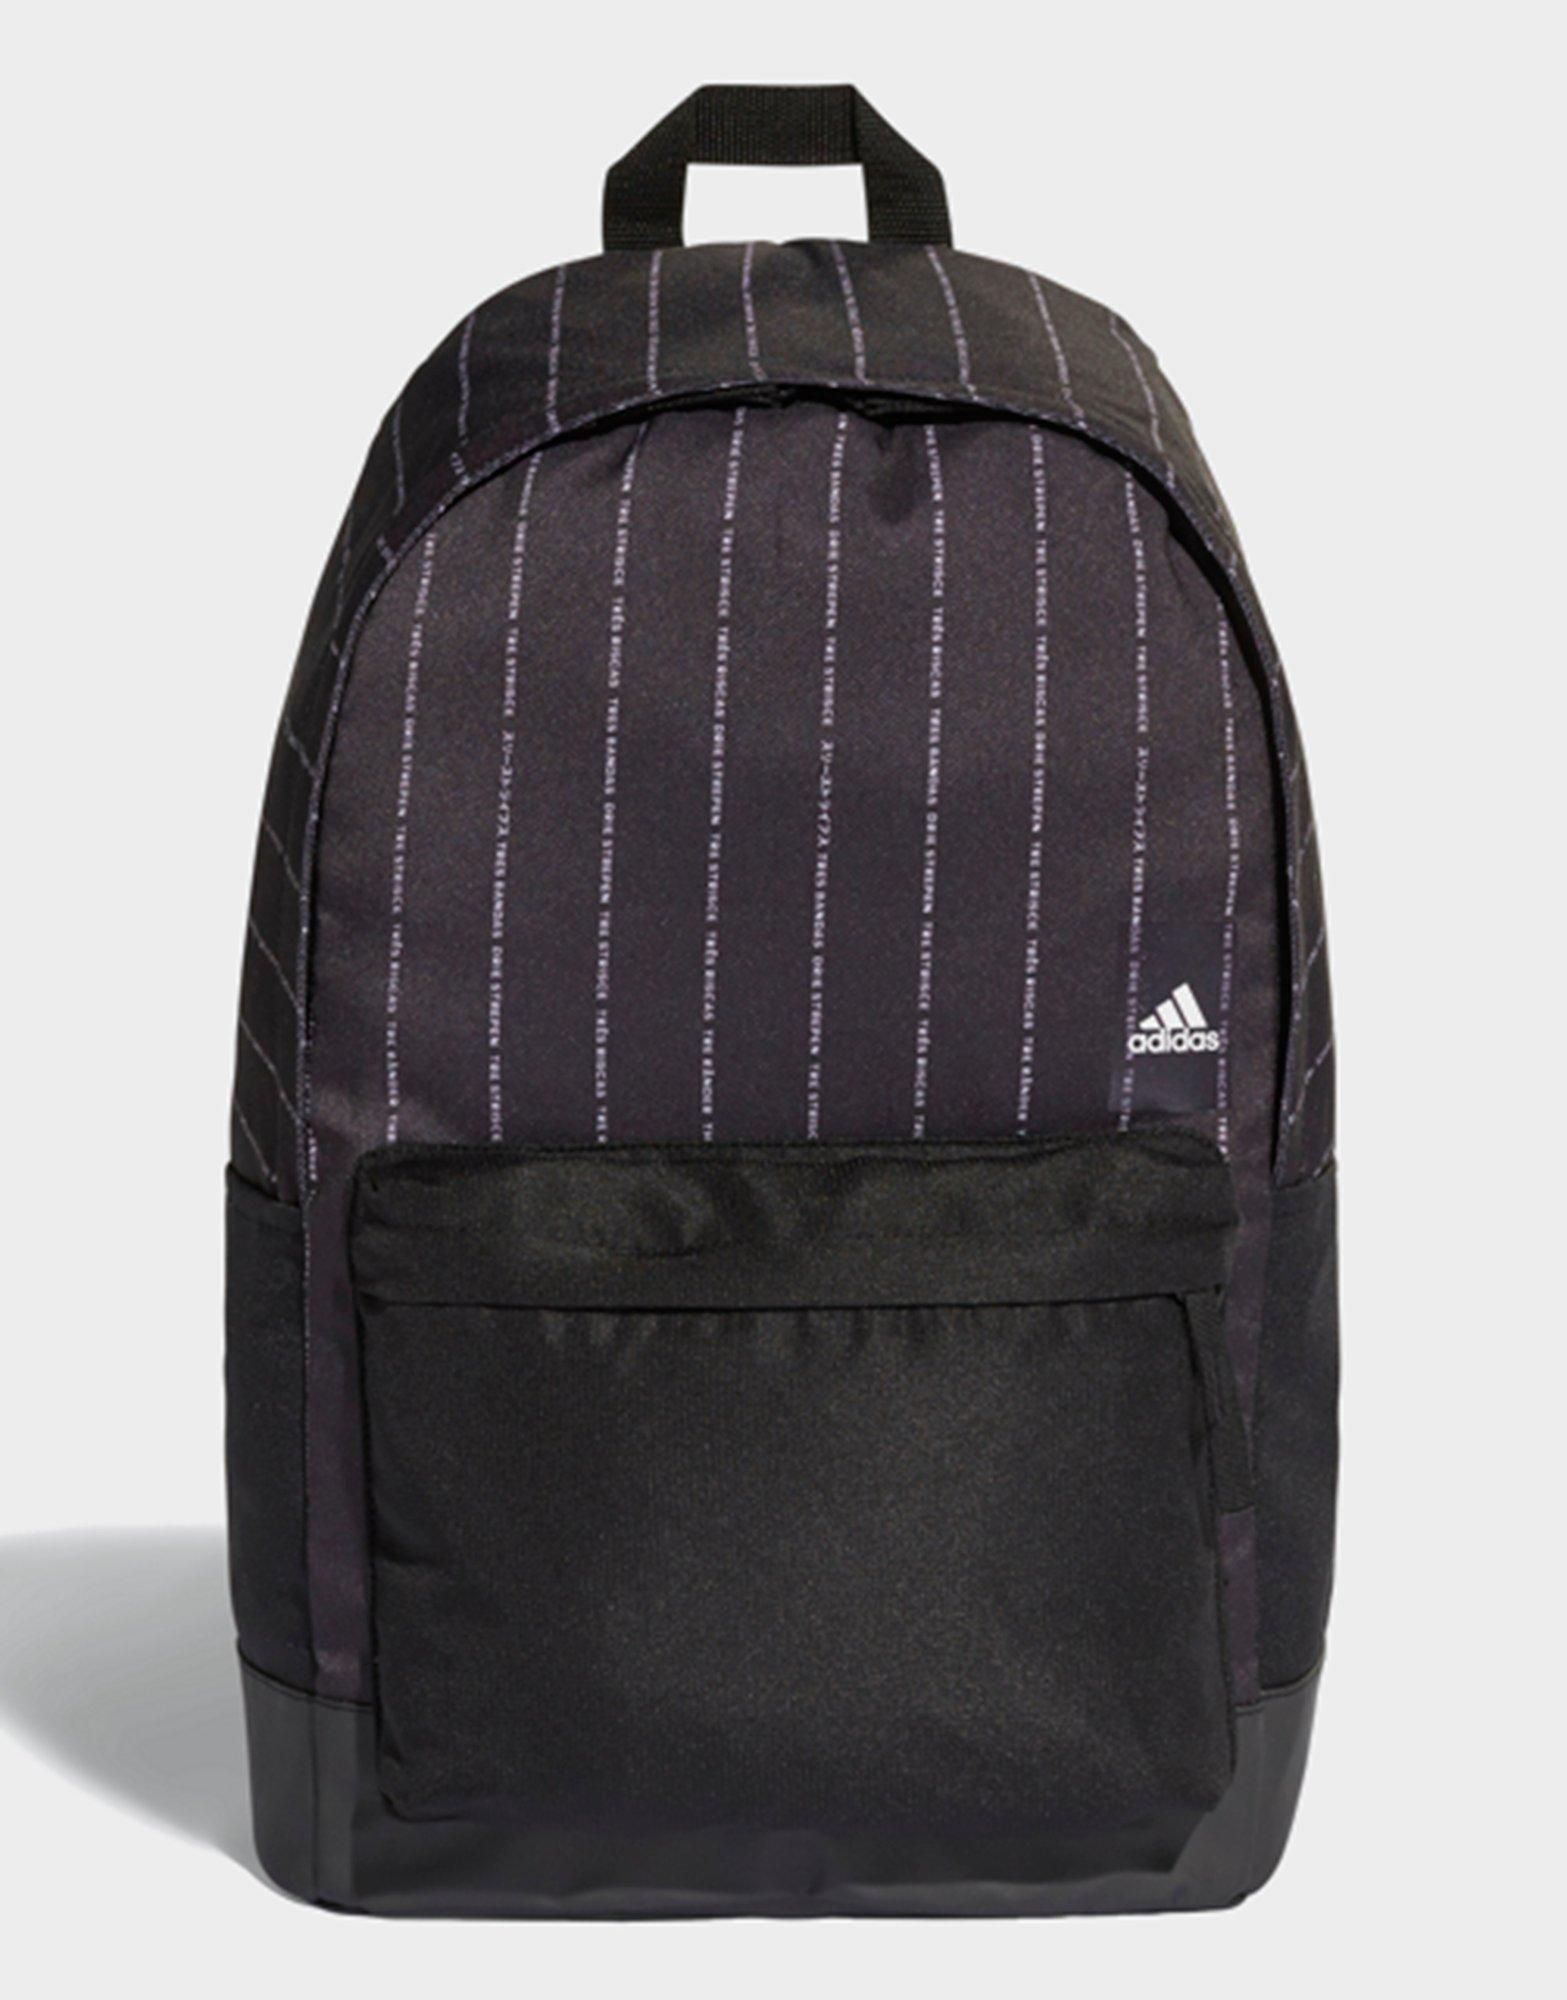 b7f611e903 Adidas Backpack in Black for Men - Lyst